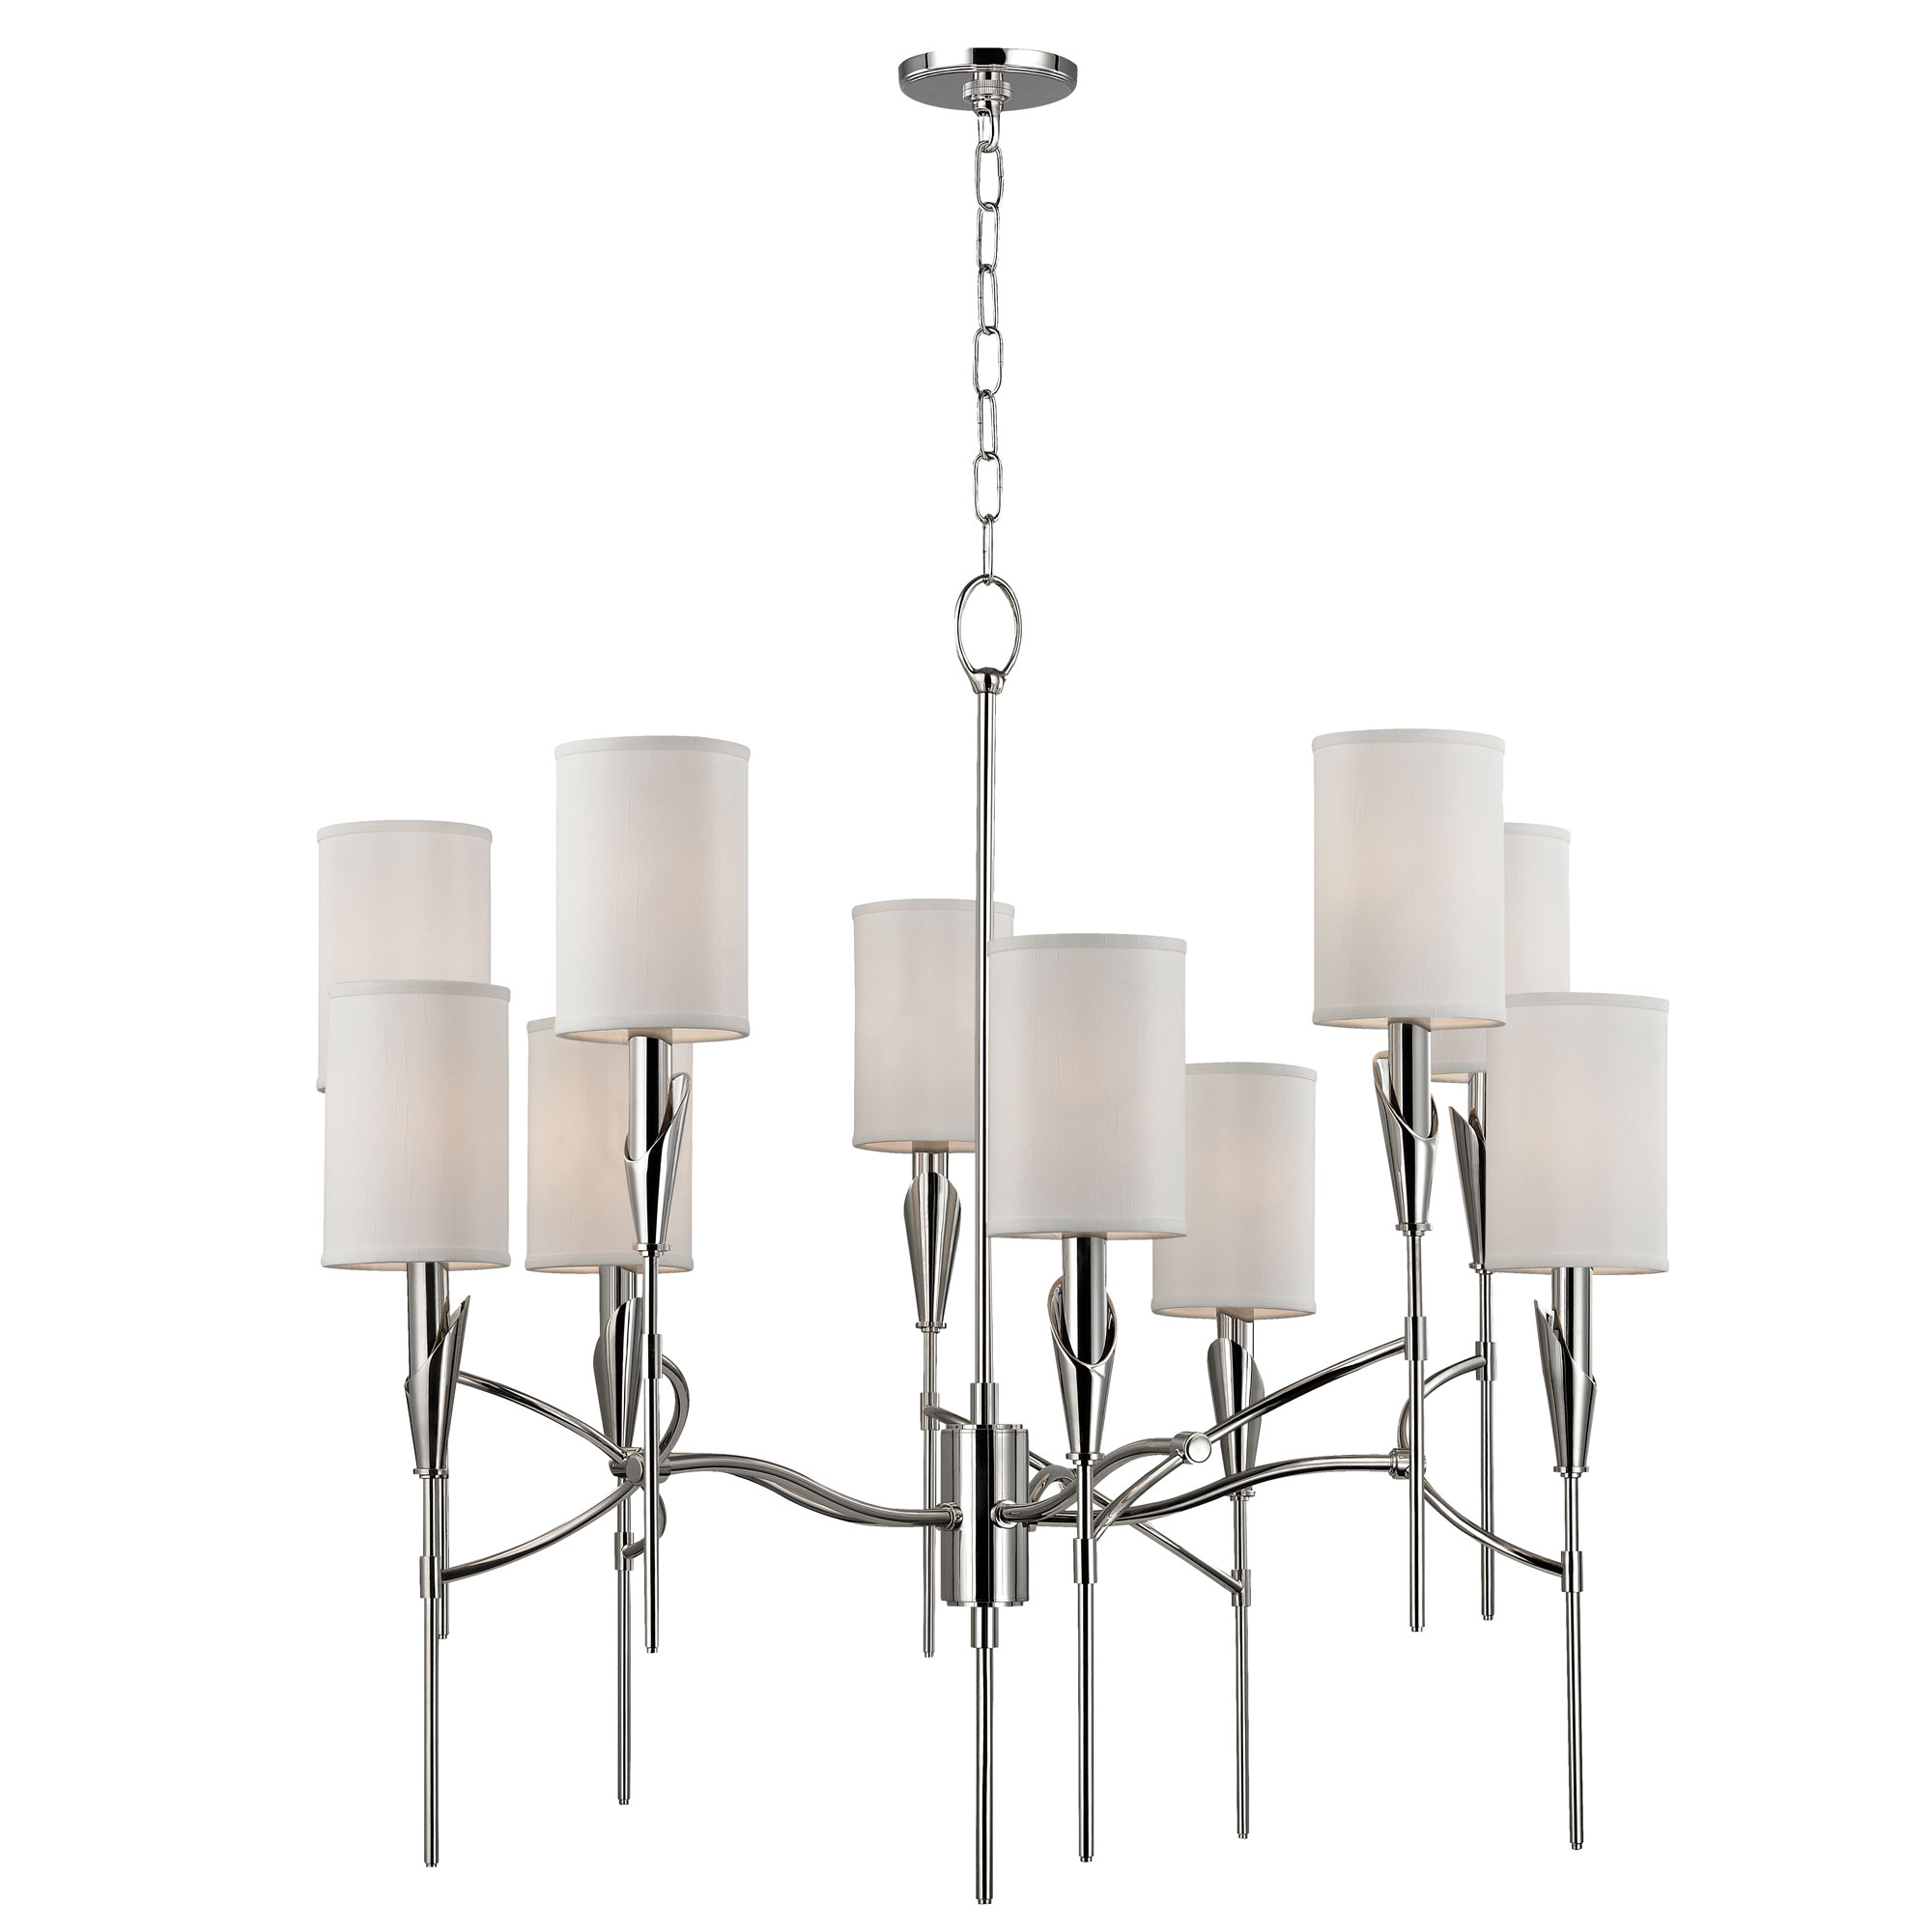 Chandelier by hudson valley lighting 1305 pn tate chandelier by hudson valley lighting 1305 pn arubaitofo Choice Image